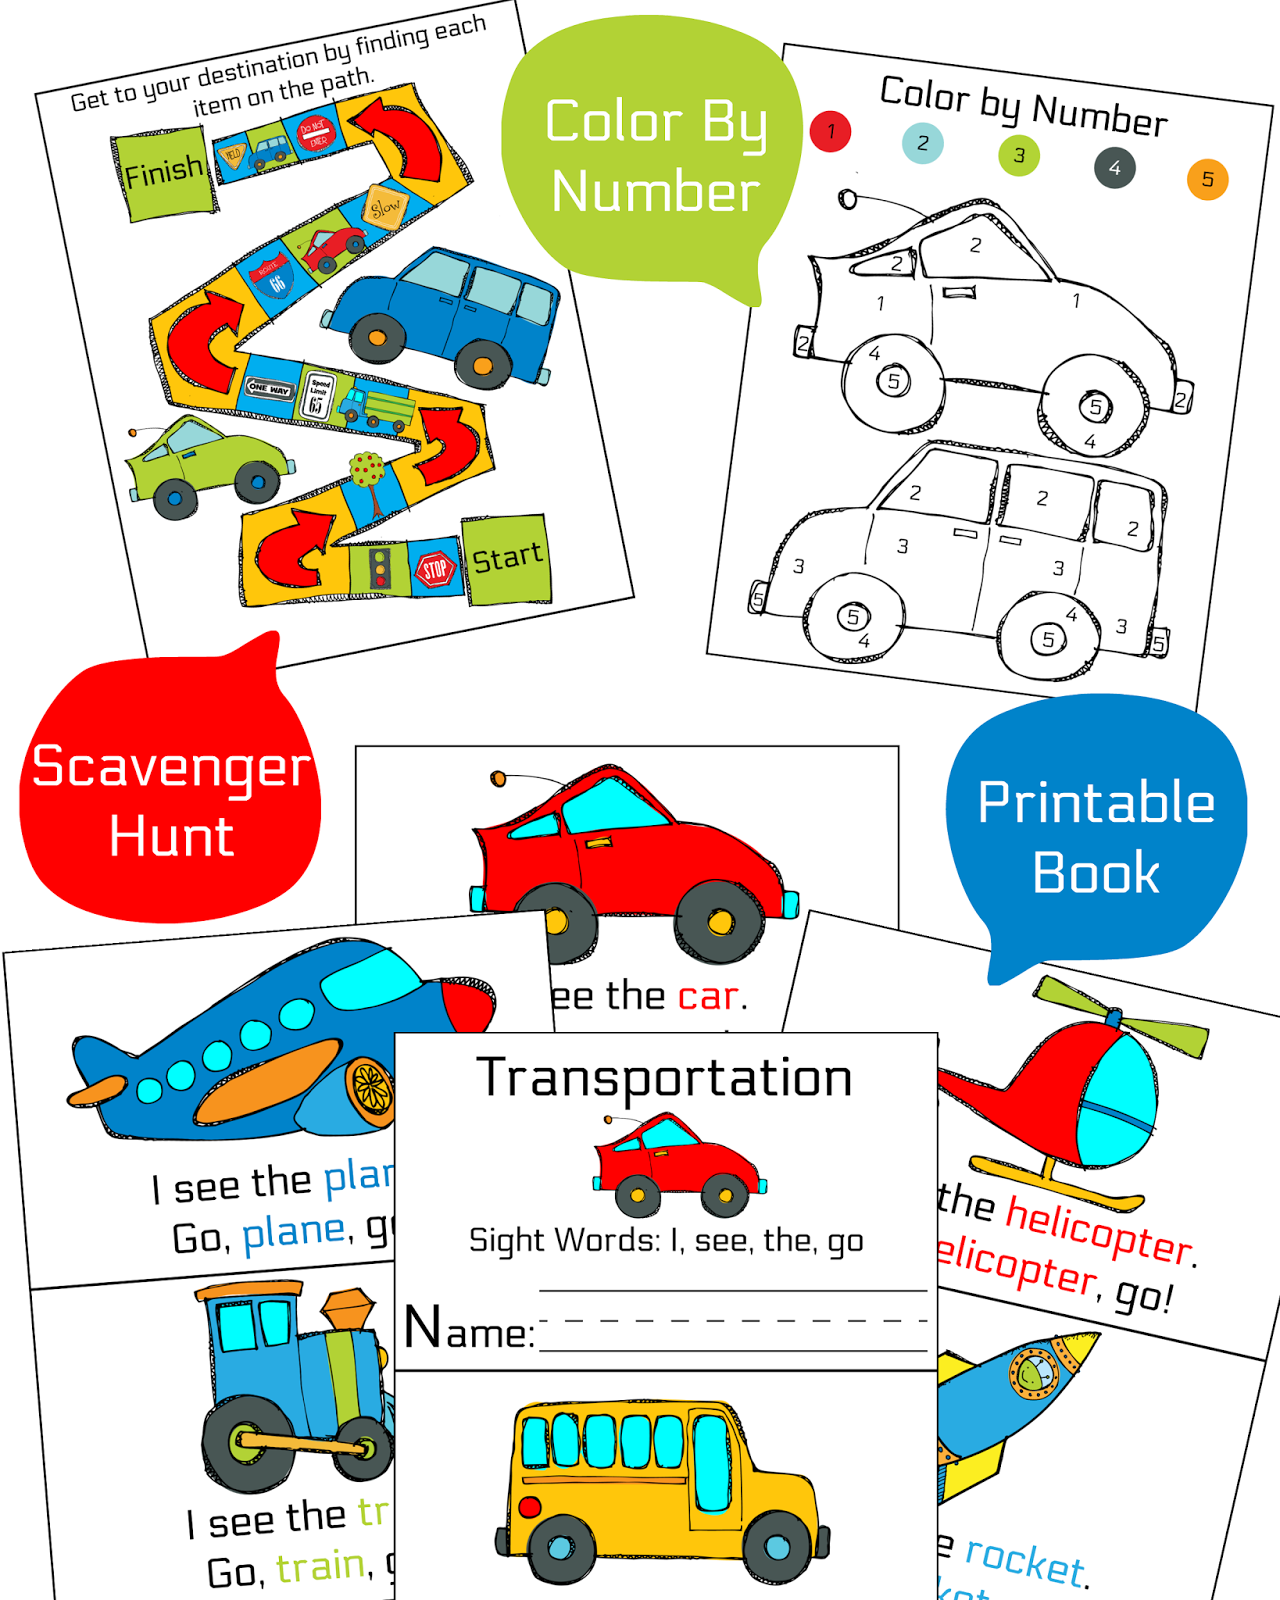 the life of jennifer dawn road trip printable activities for kids